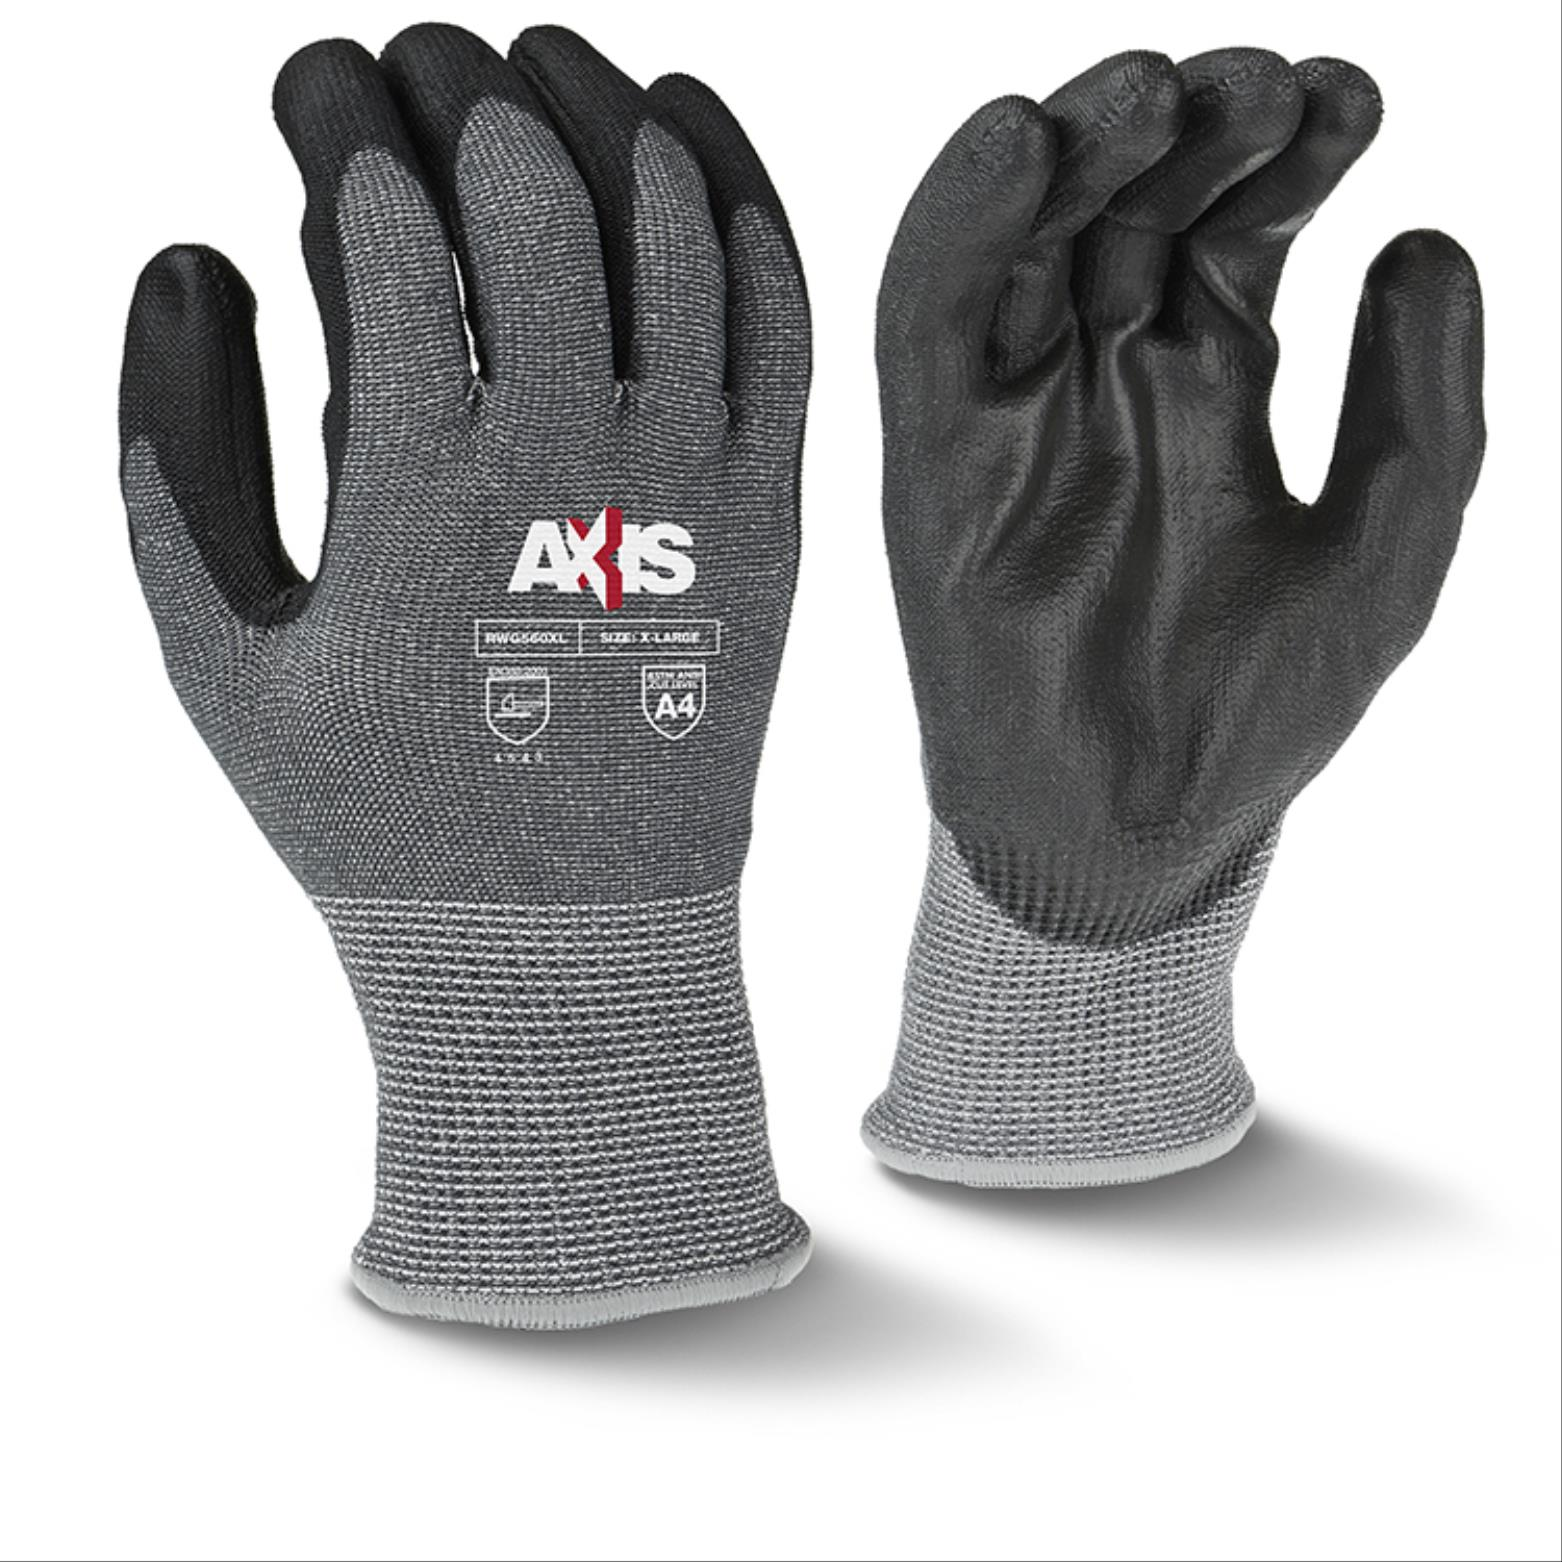 Axis™ HPPE Glove with Fiberglass, Cut Level A4